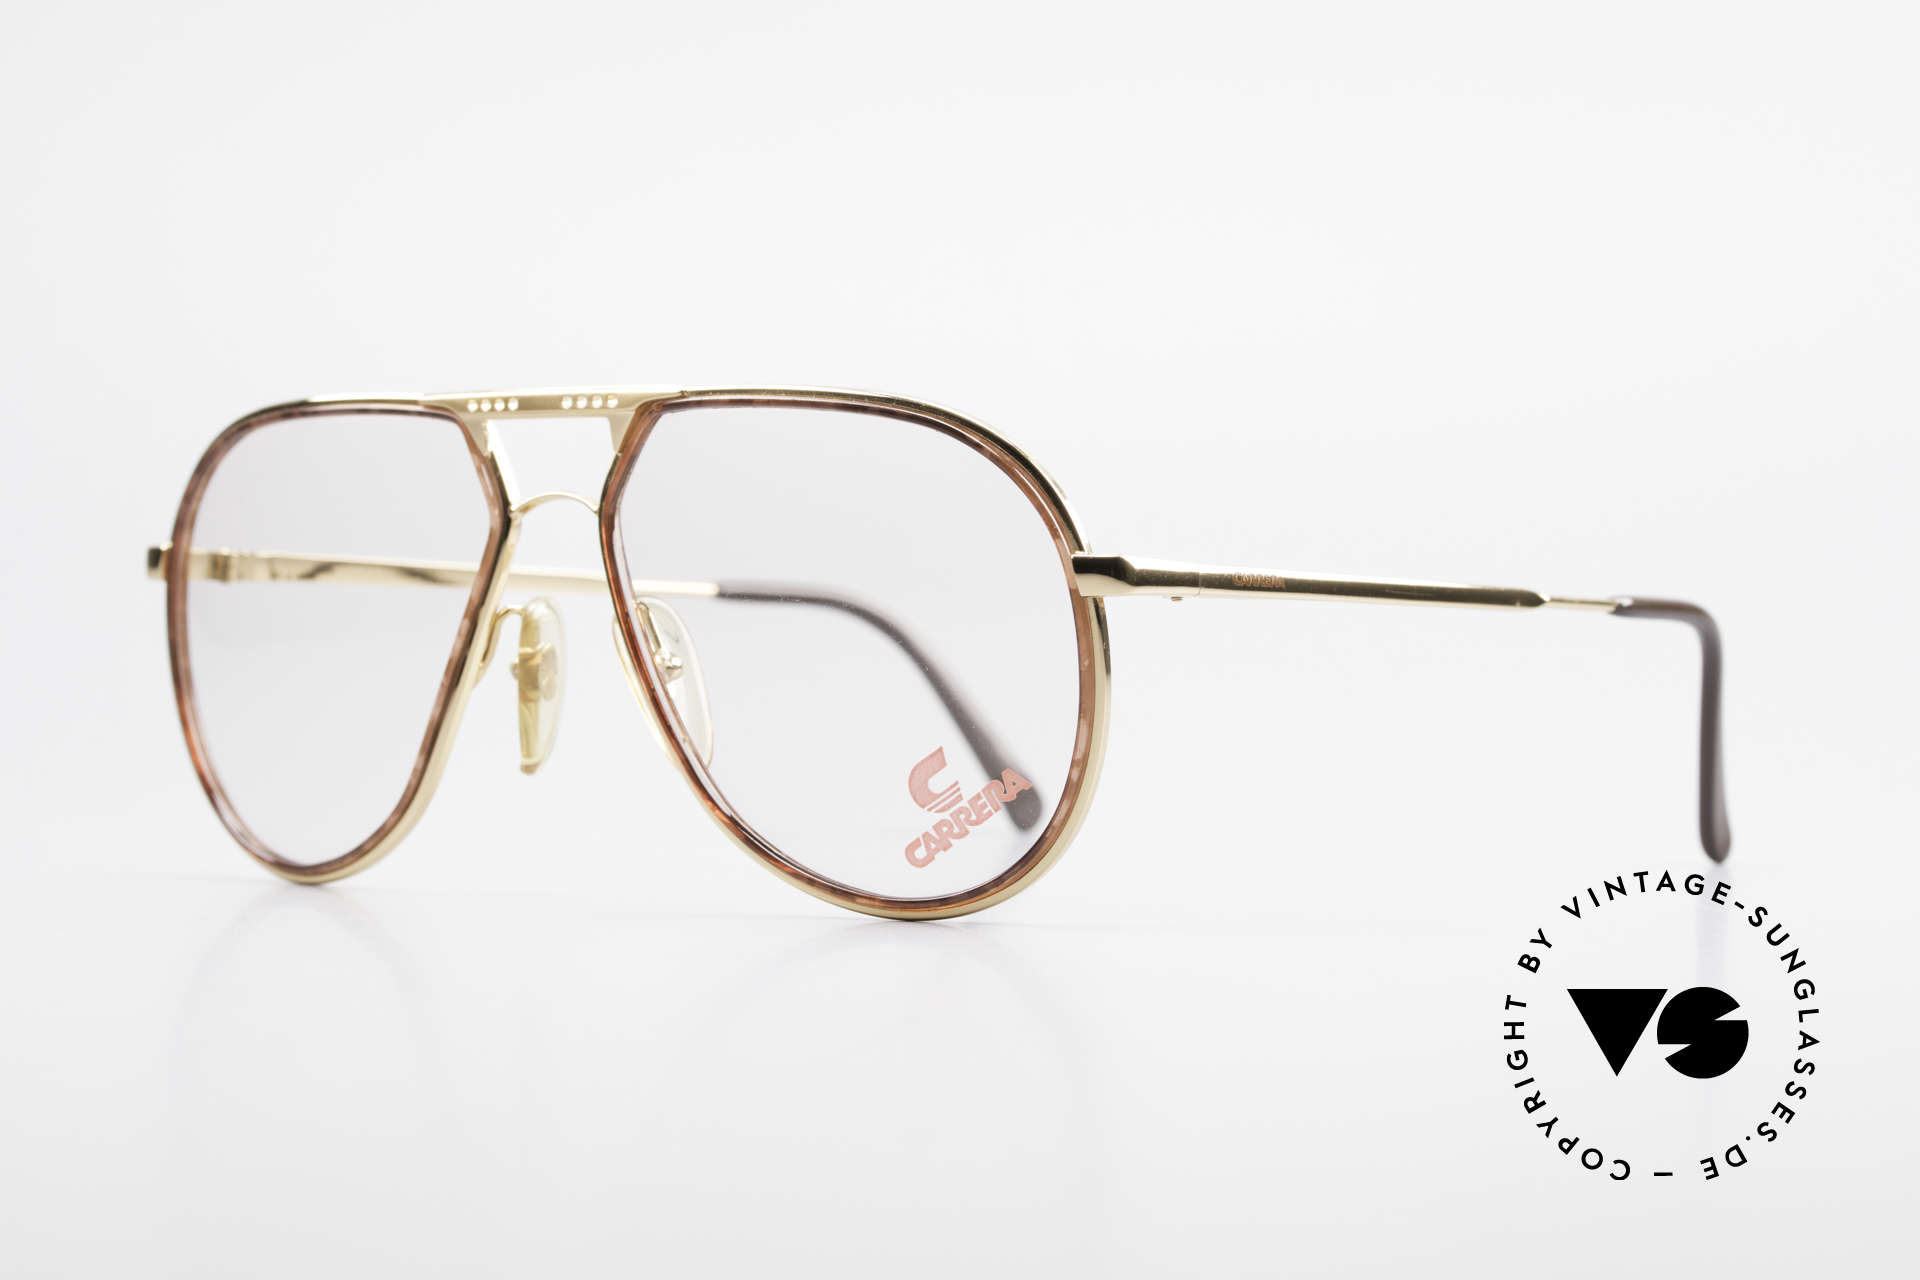 Carrera 5371 Rare Vintage 80's Eyeglasses, true 'gentleman glasses' in top craftsmanship, Made for Men